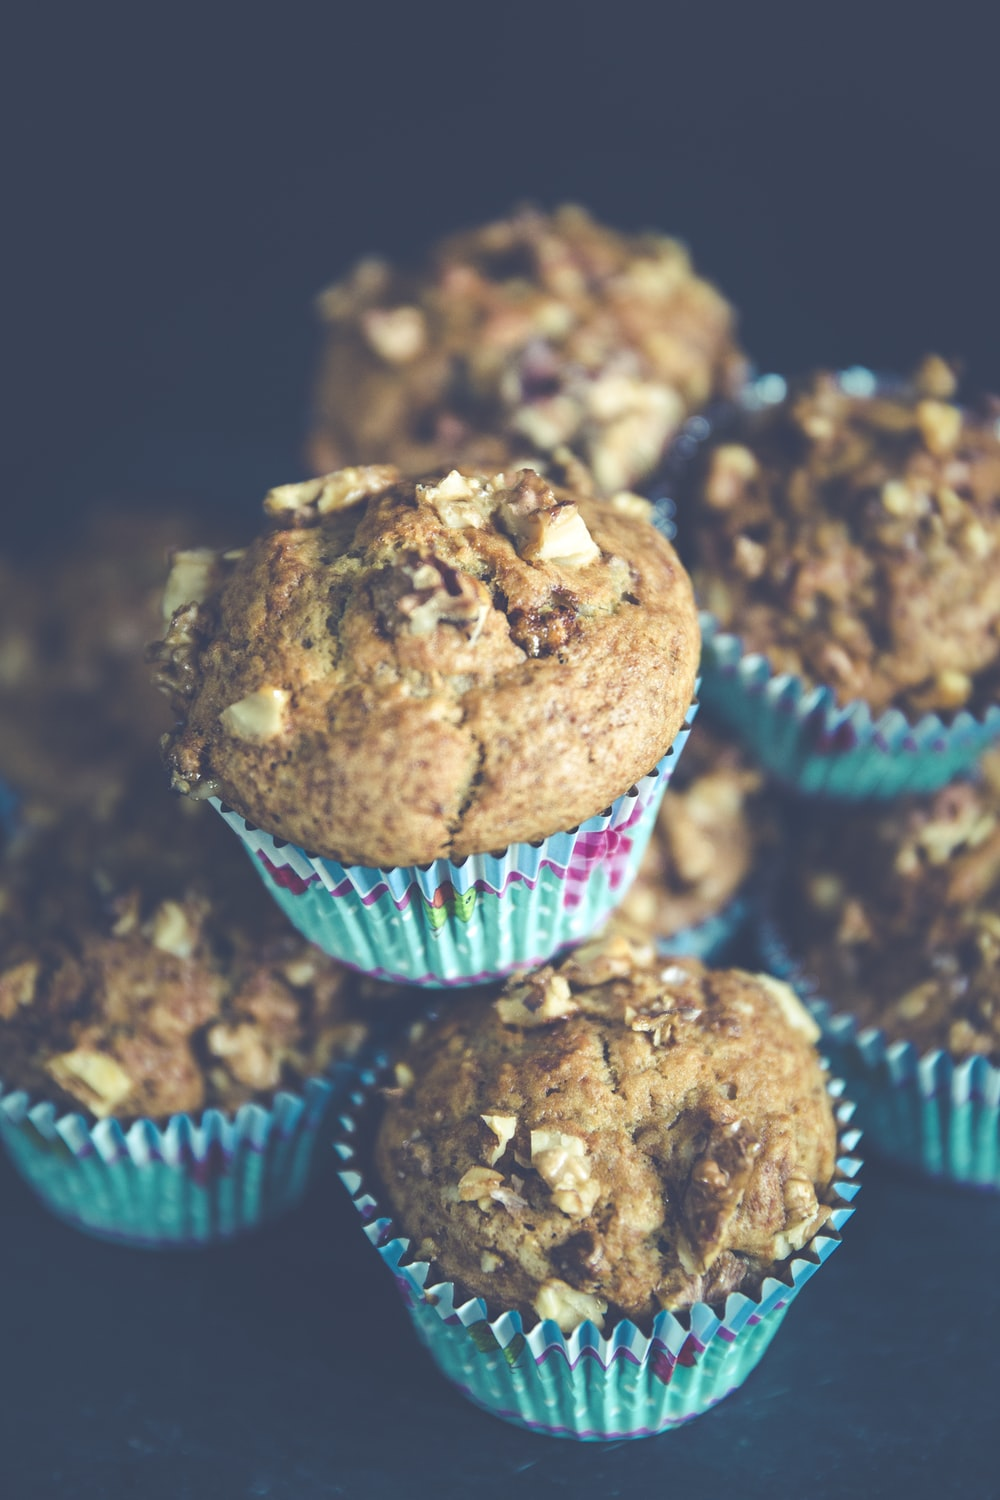 selective focus photo of pile of muffins